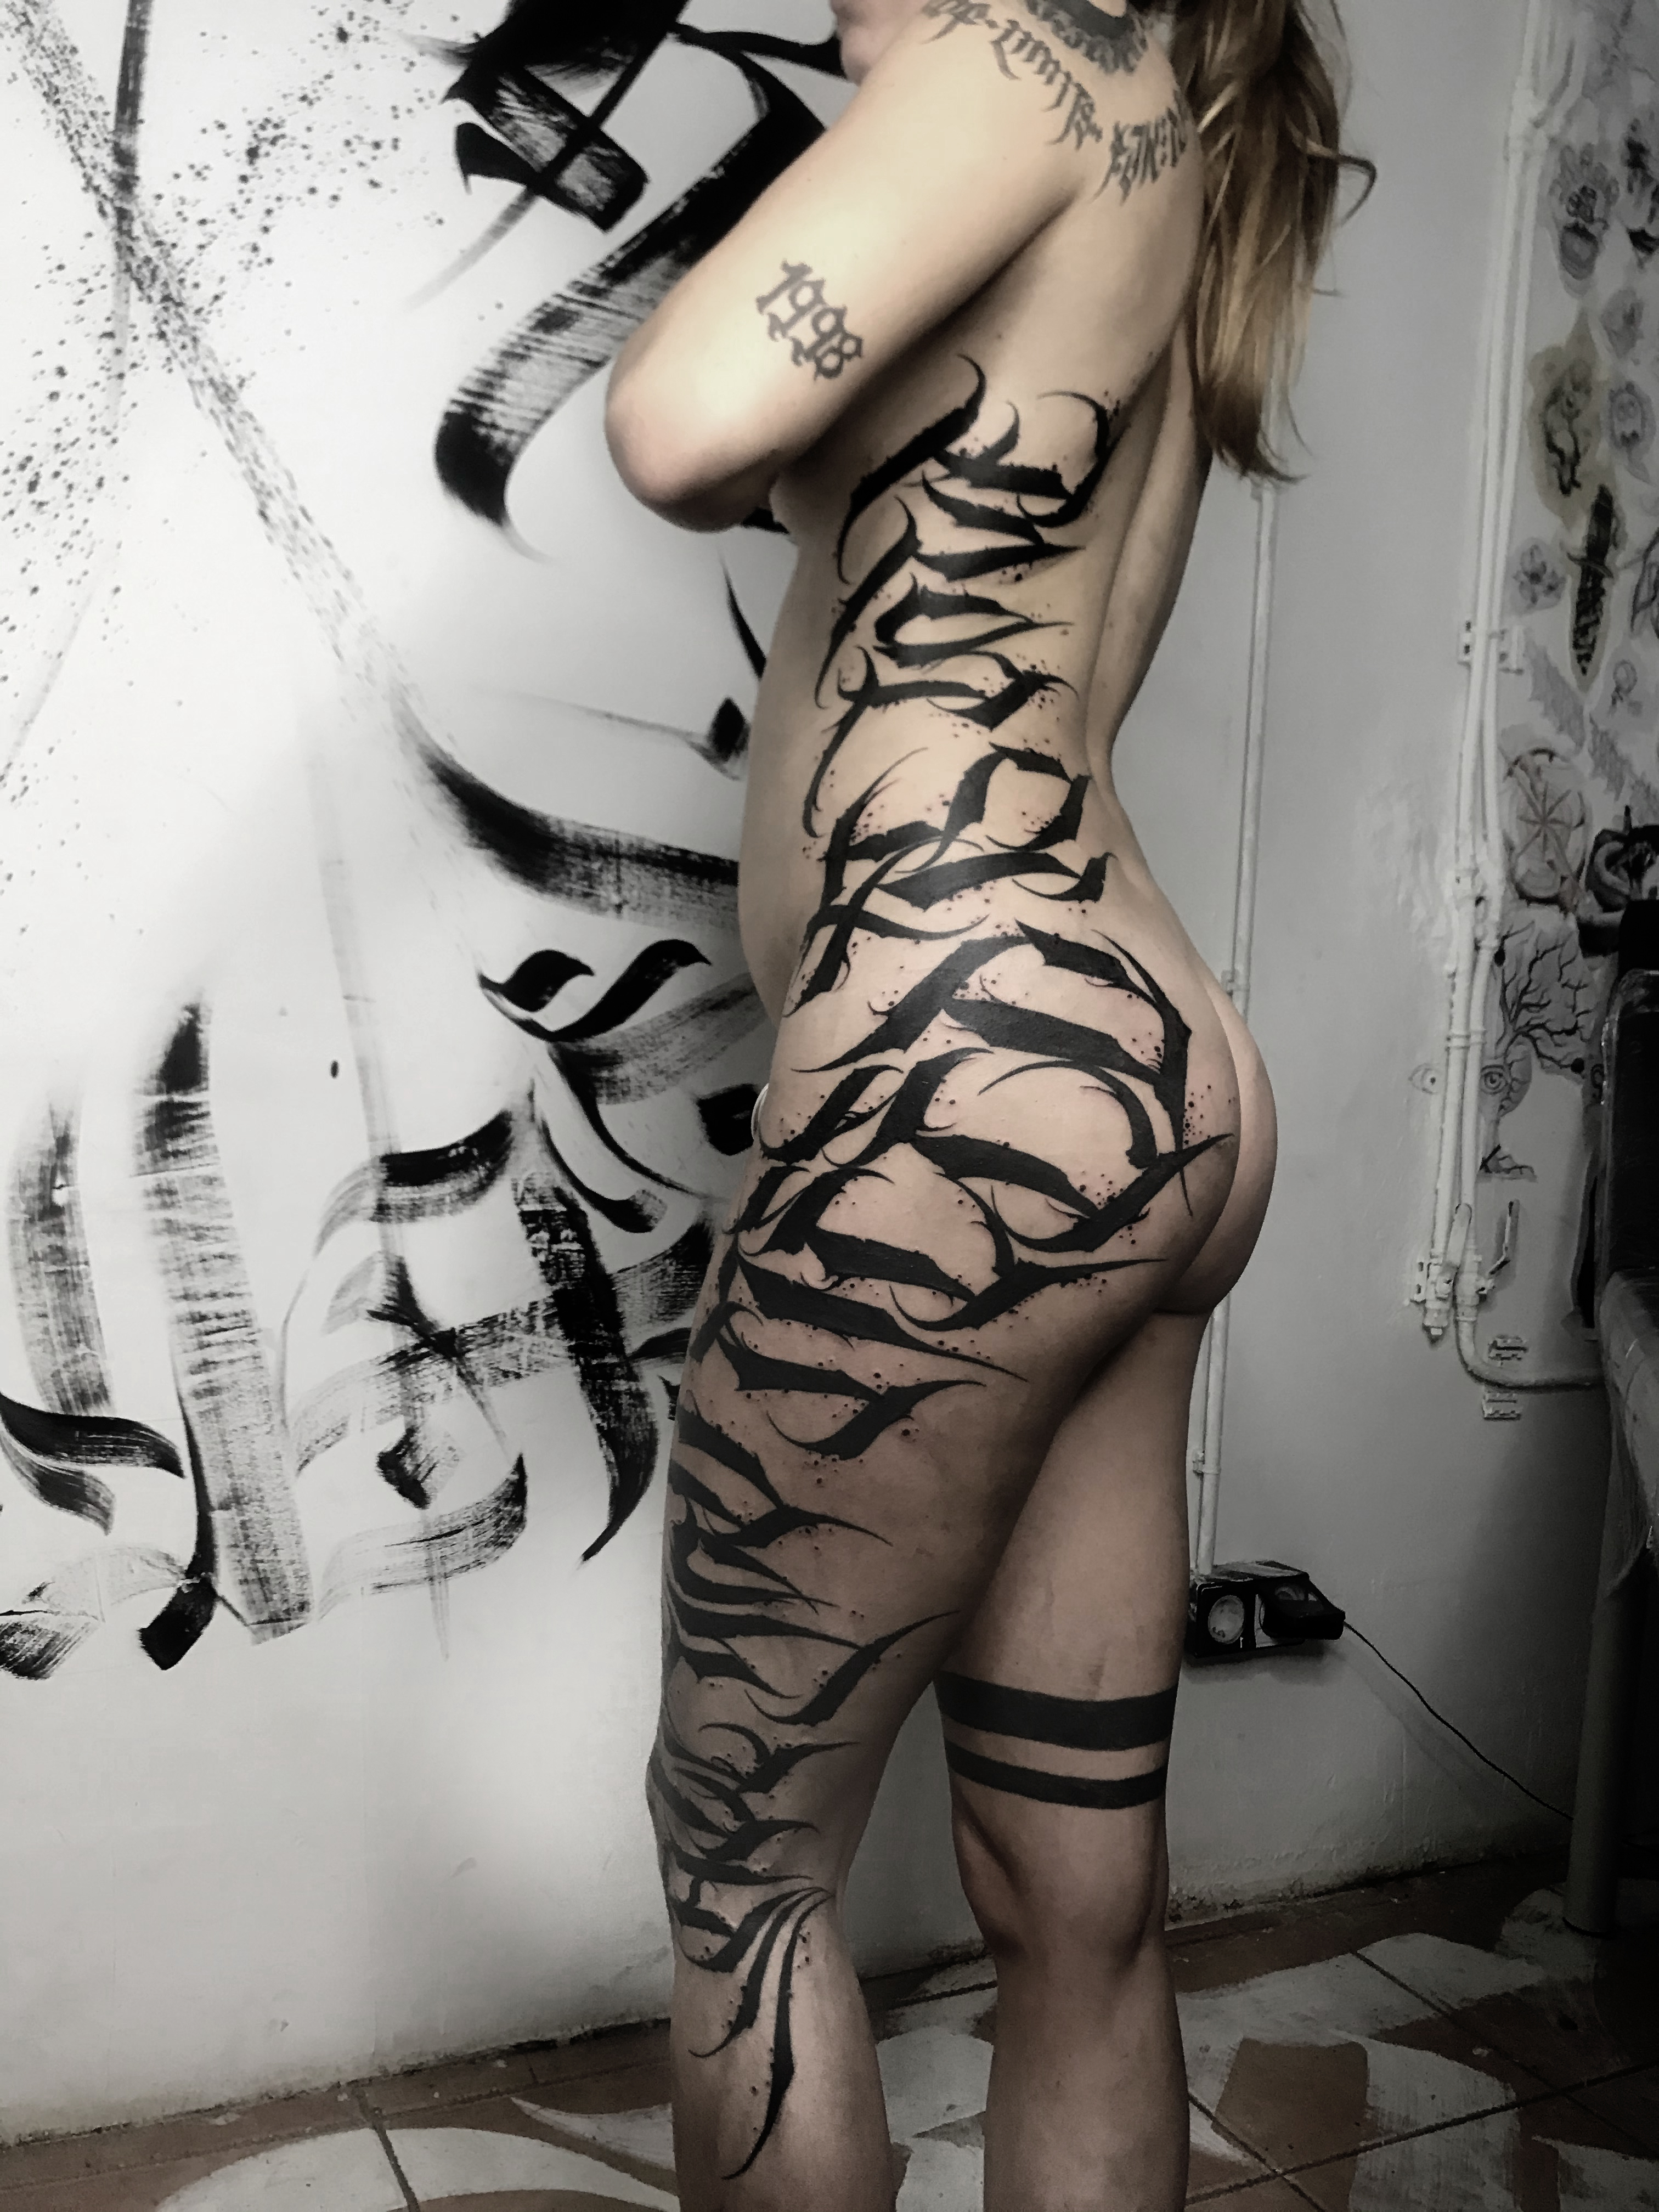 Inksearch tattoo Capdepol